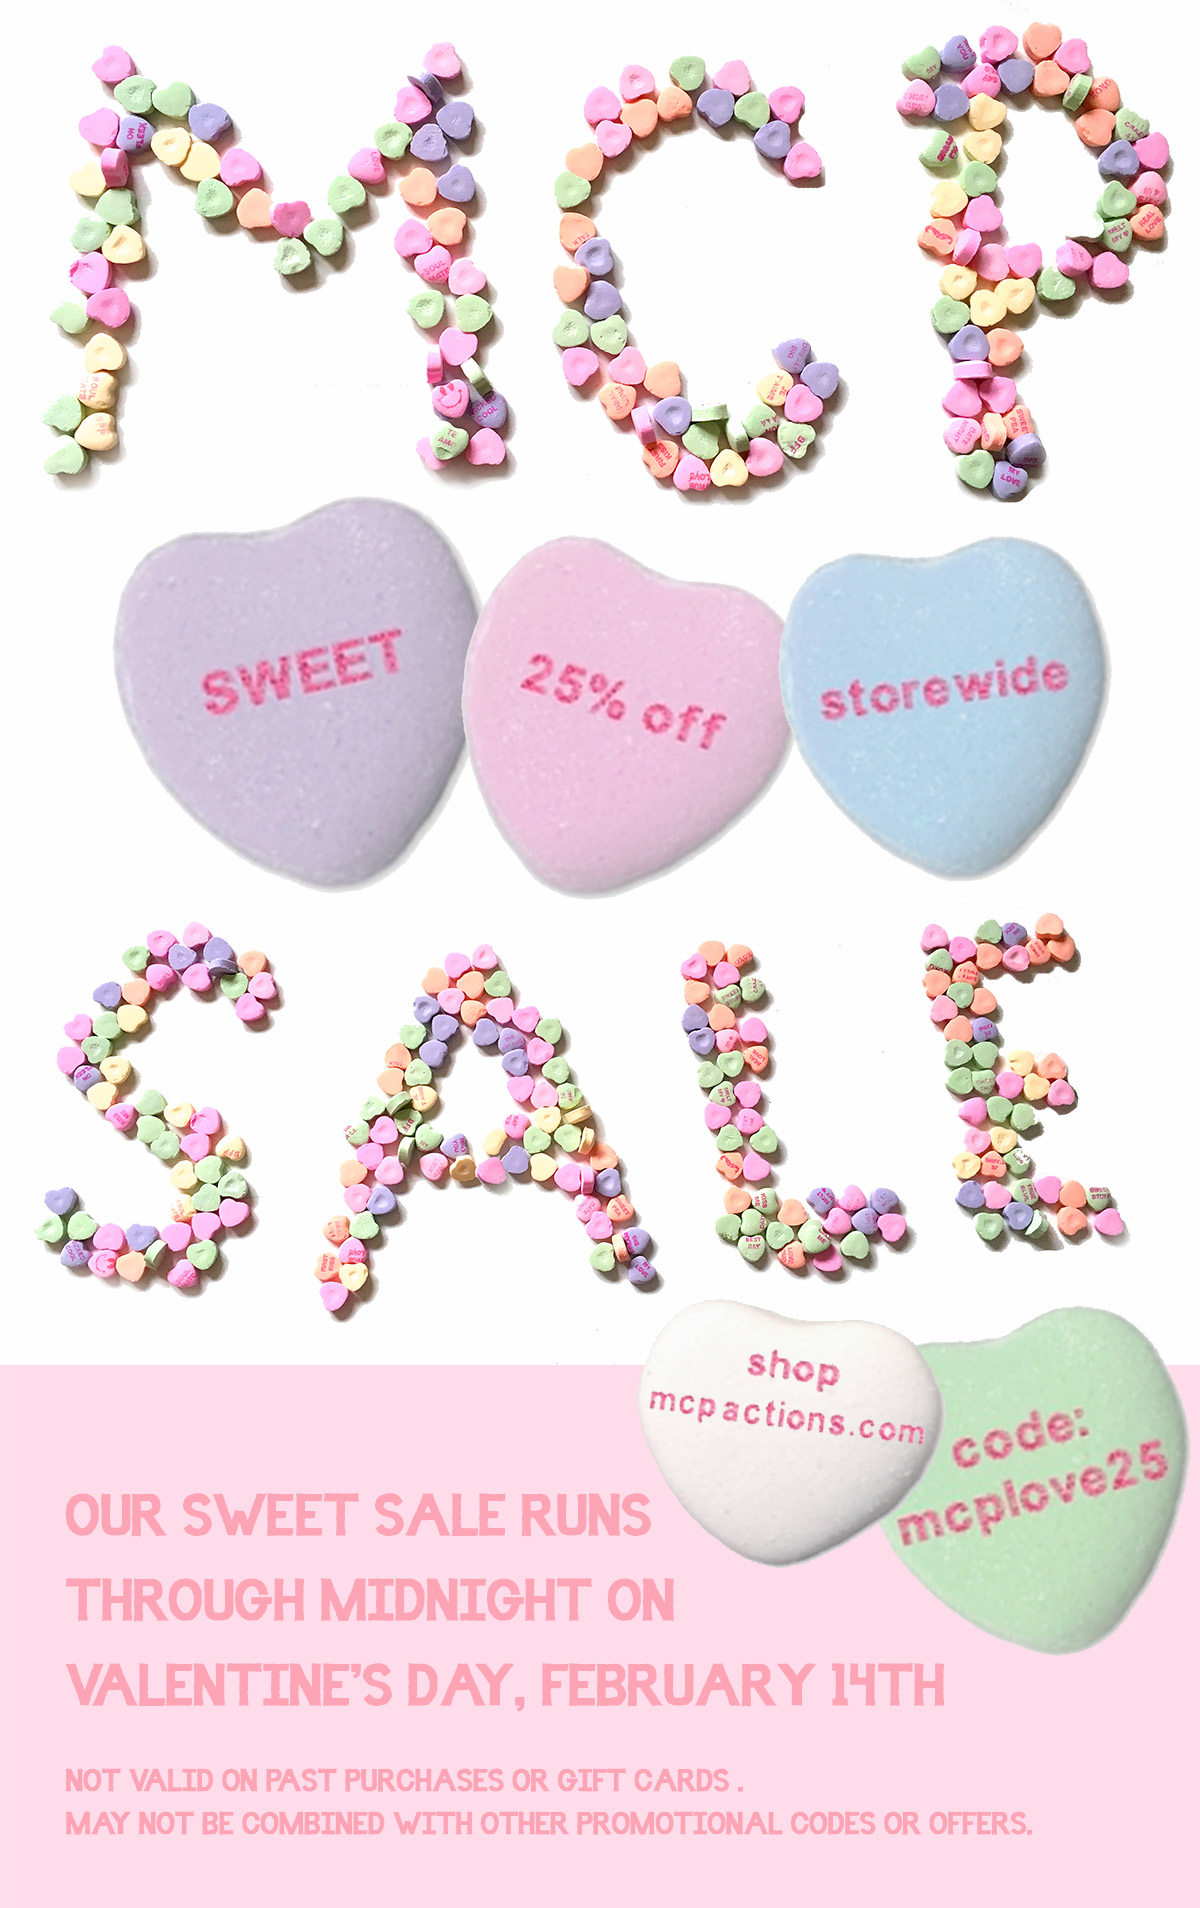 MCP-sale MCP Sweet Sale Starts Now! 25% Off Storewide Announcements Discounts, Deals & Coupons